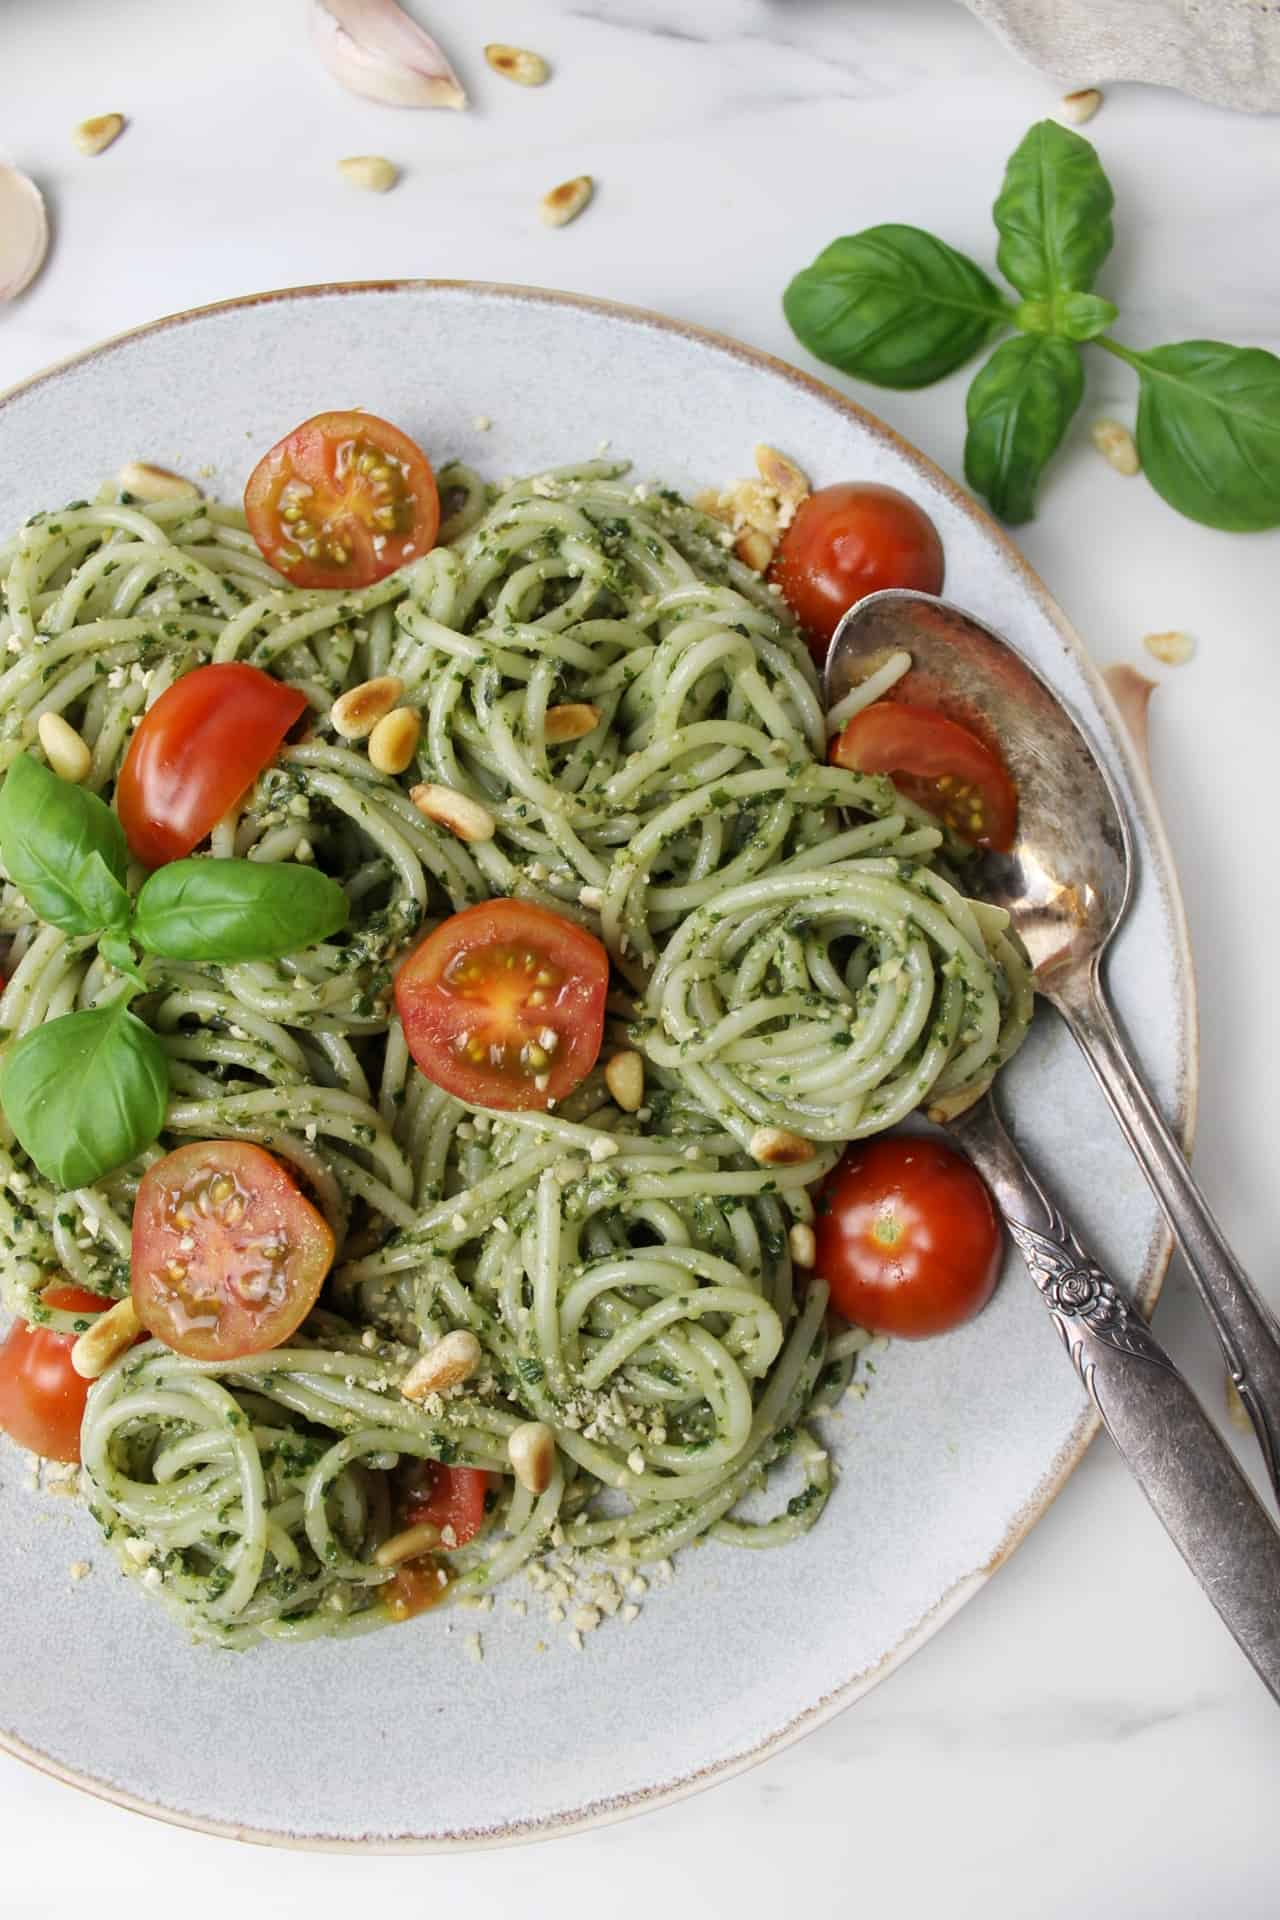 Vegan pesto pasta - easy weeknight recipe